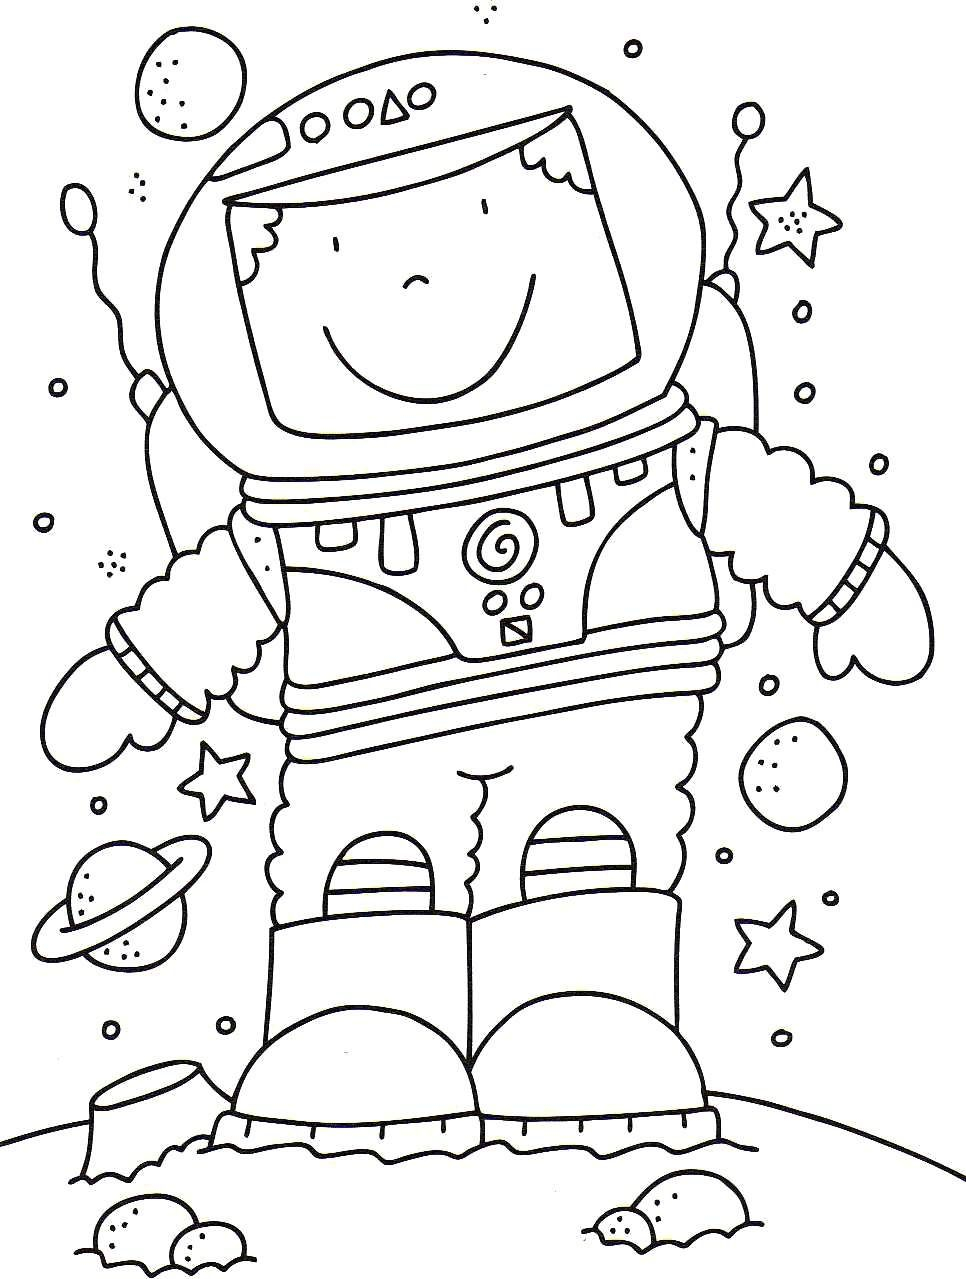 Solar Energy Coloring Pages  to Print 18e - Free For kids